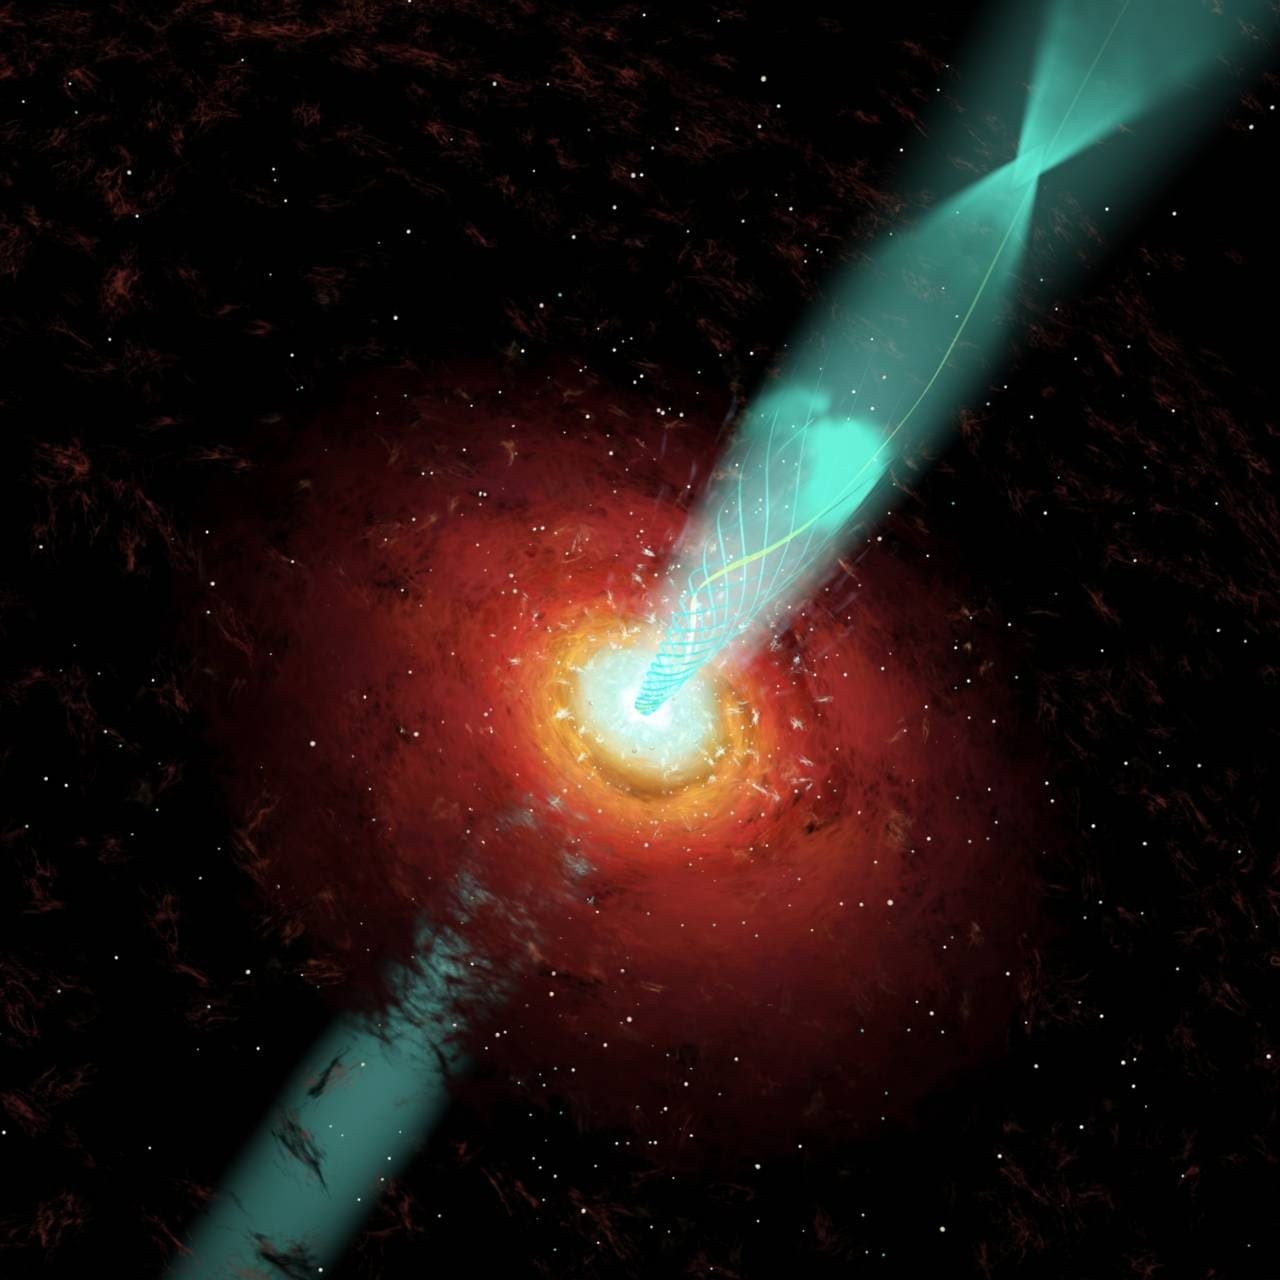 DST astronomers trace huge optical flare from supermassive black hole discovered in the 1960s